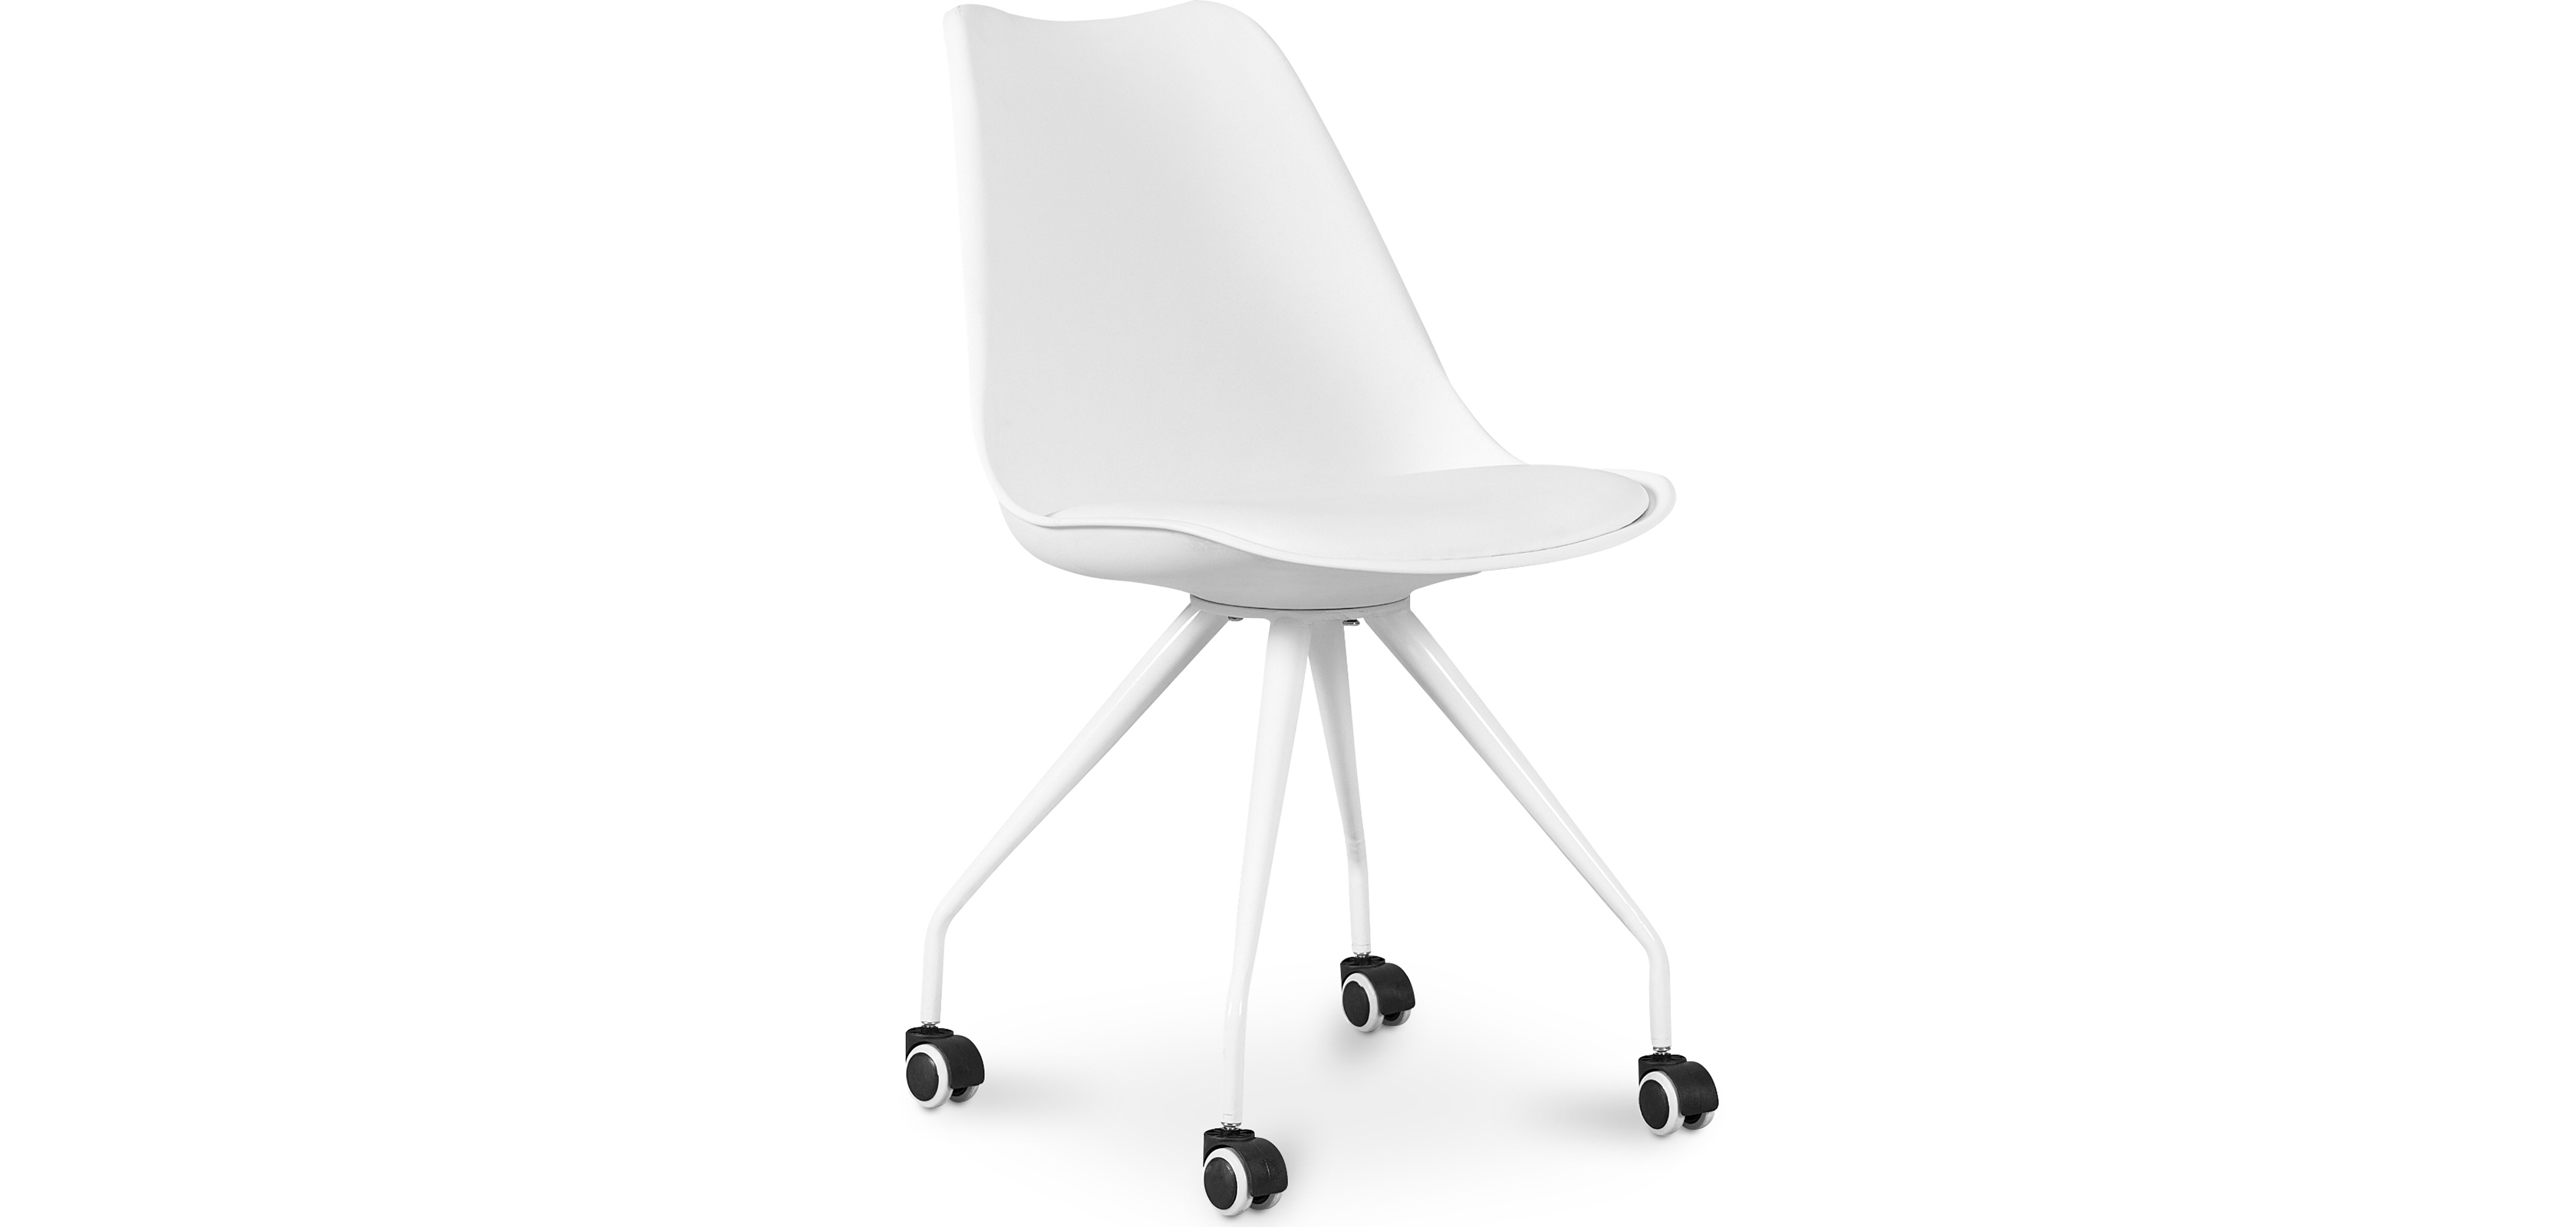 Buy Scandinavian Office chair with Wheels - Dana White 59904 - in the EU